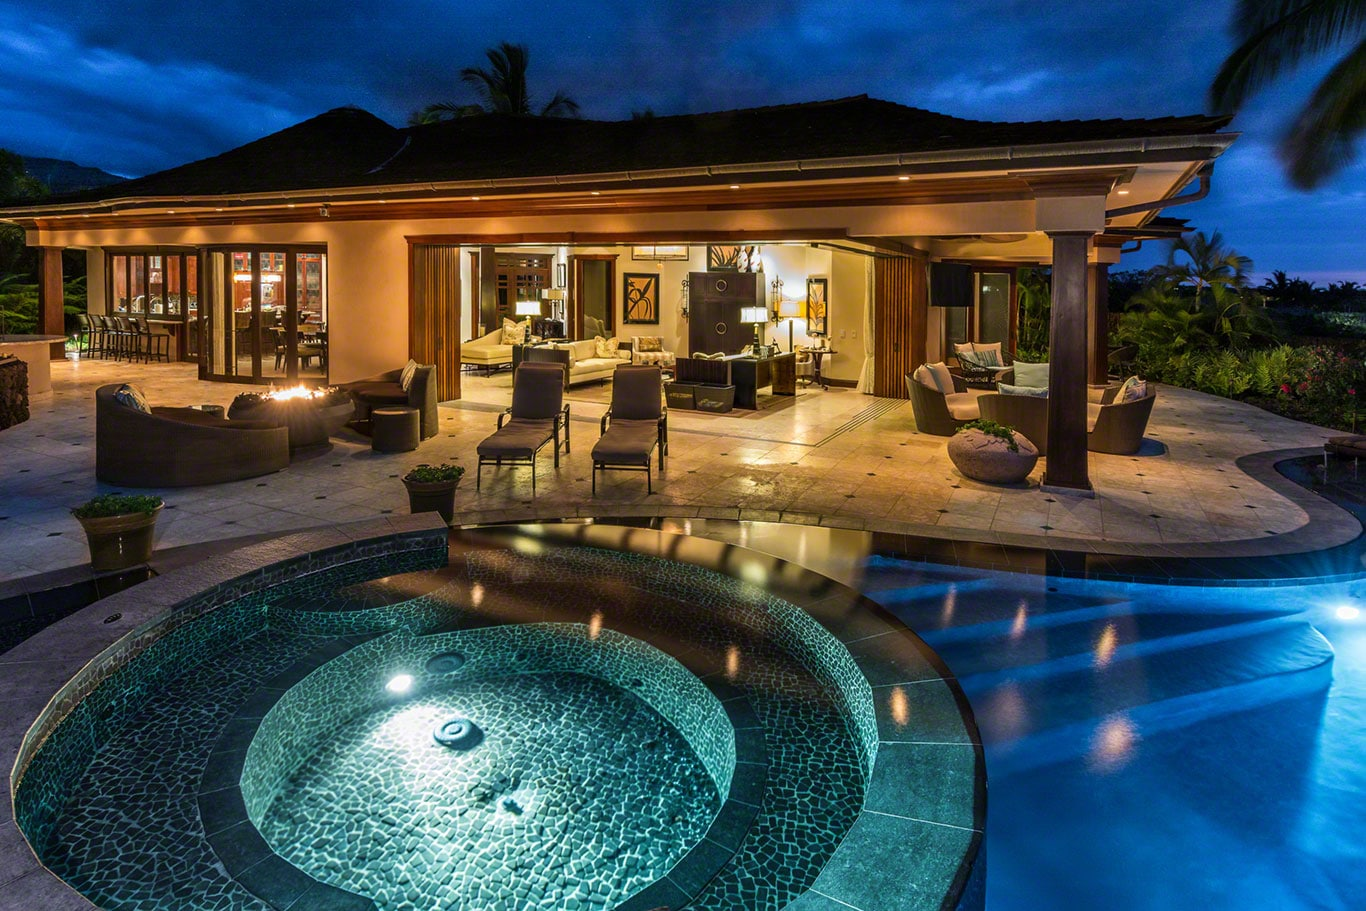 Beautiful Homes In Hawaii Homes For Sale In Hawaii  Kimi Correa Specializes In Hawaii Real